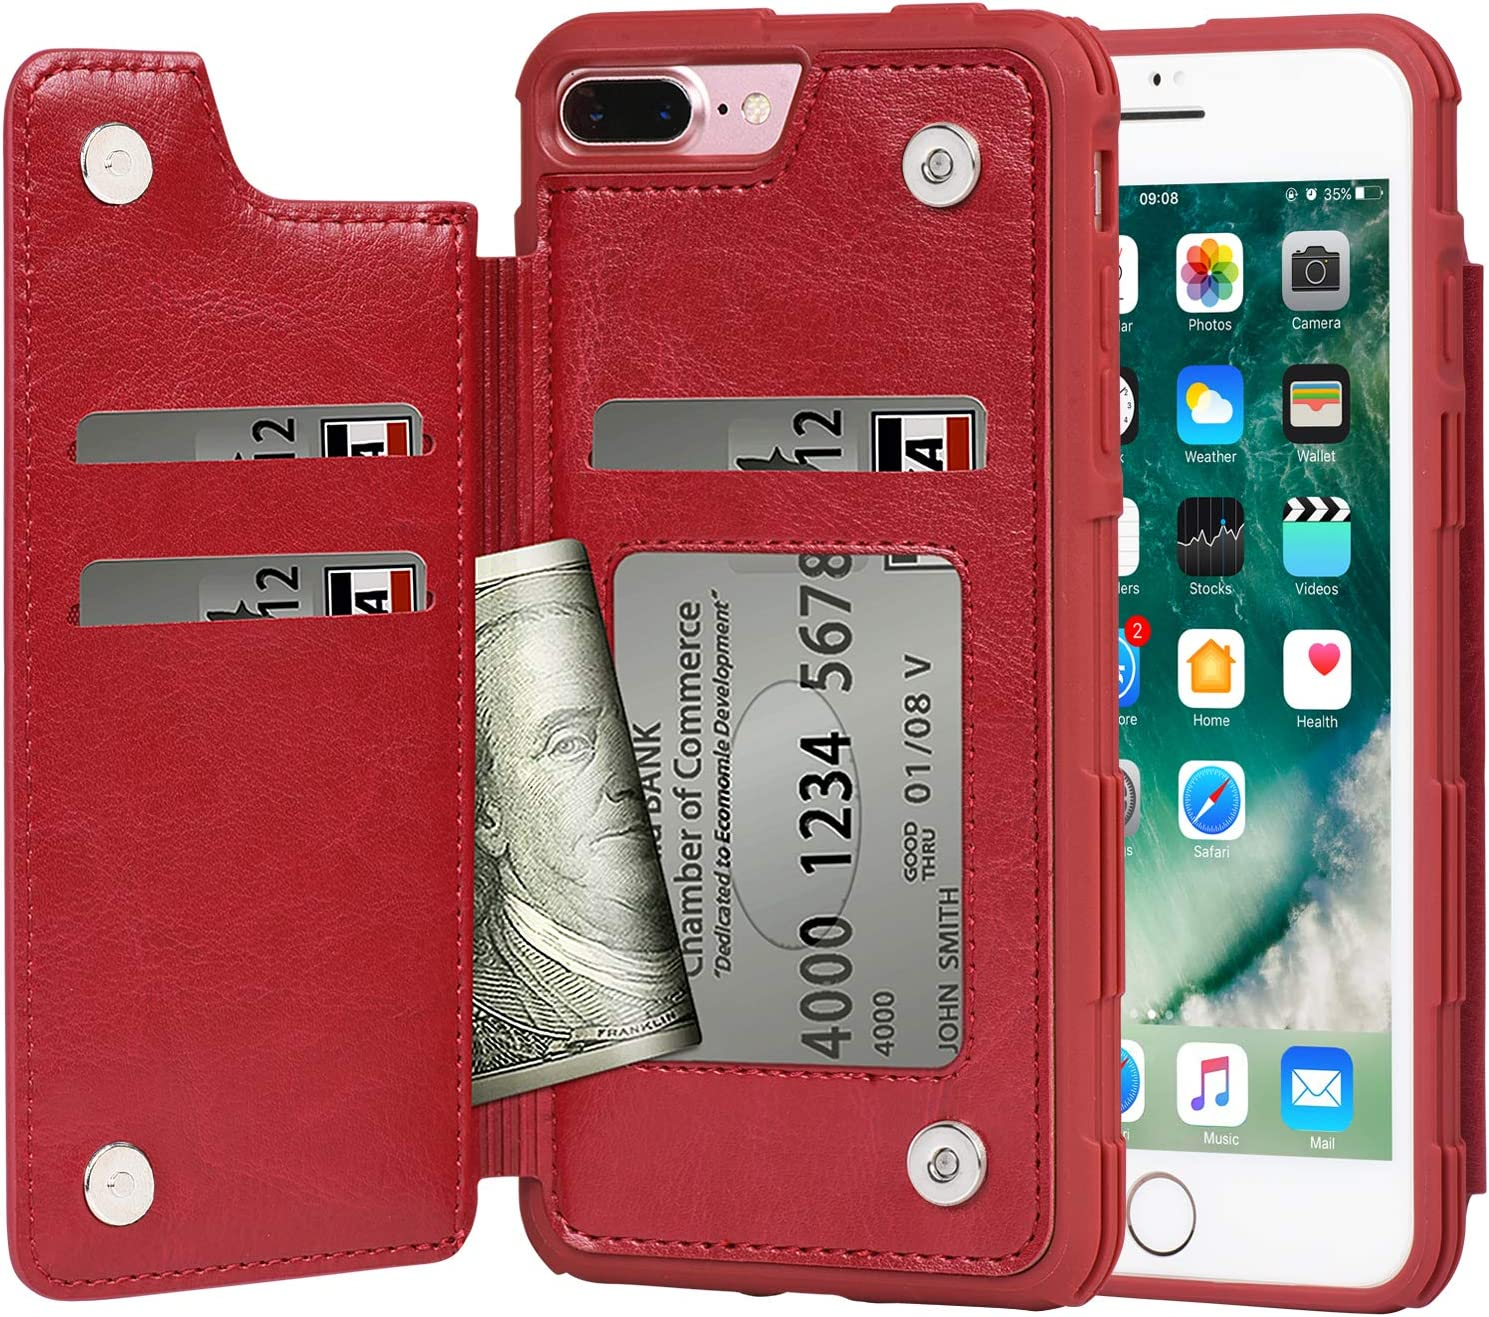 Arae Case for iPhone 7 Plus/iPhone 8 Plus - Wallet Case with PU Leather Card Pockets [Shockproof] Back Flip Cover for iPhone 7 Plus / 8 Plus 5.5 inch (red)